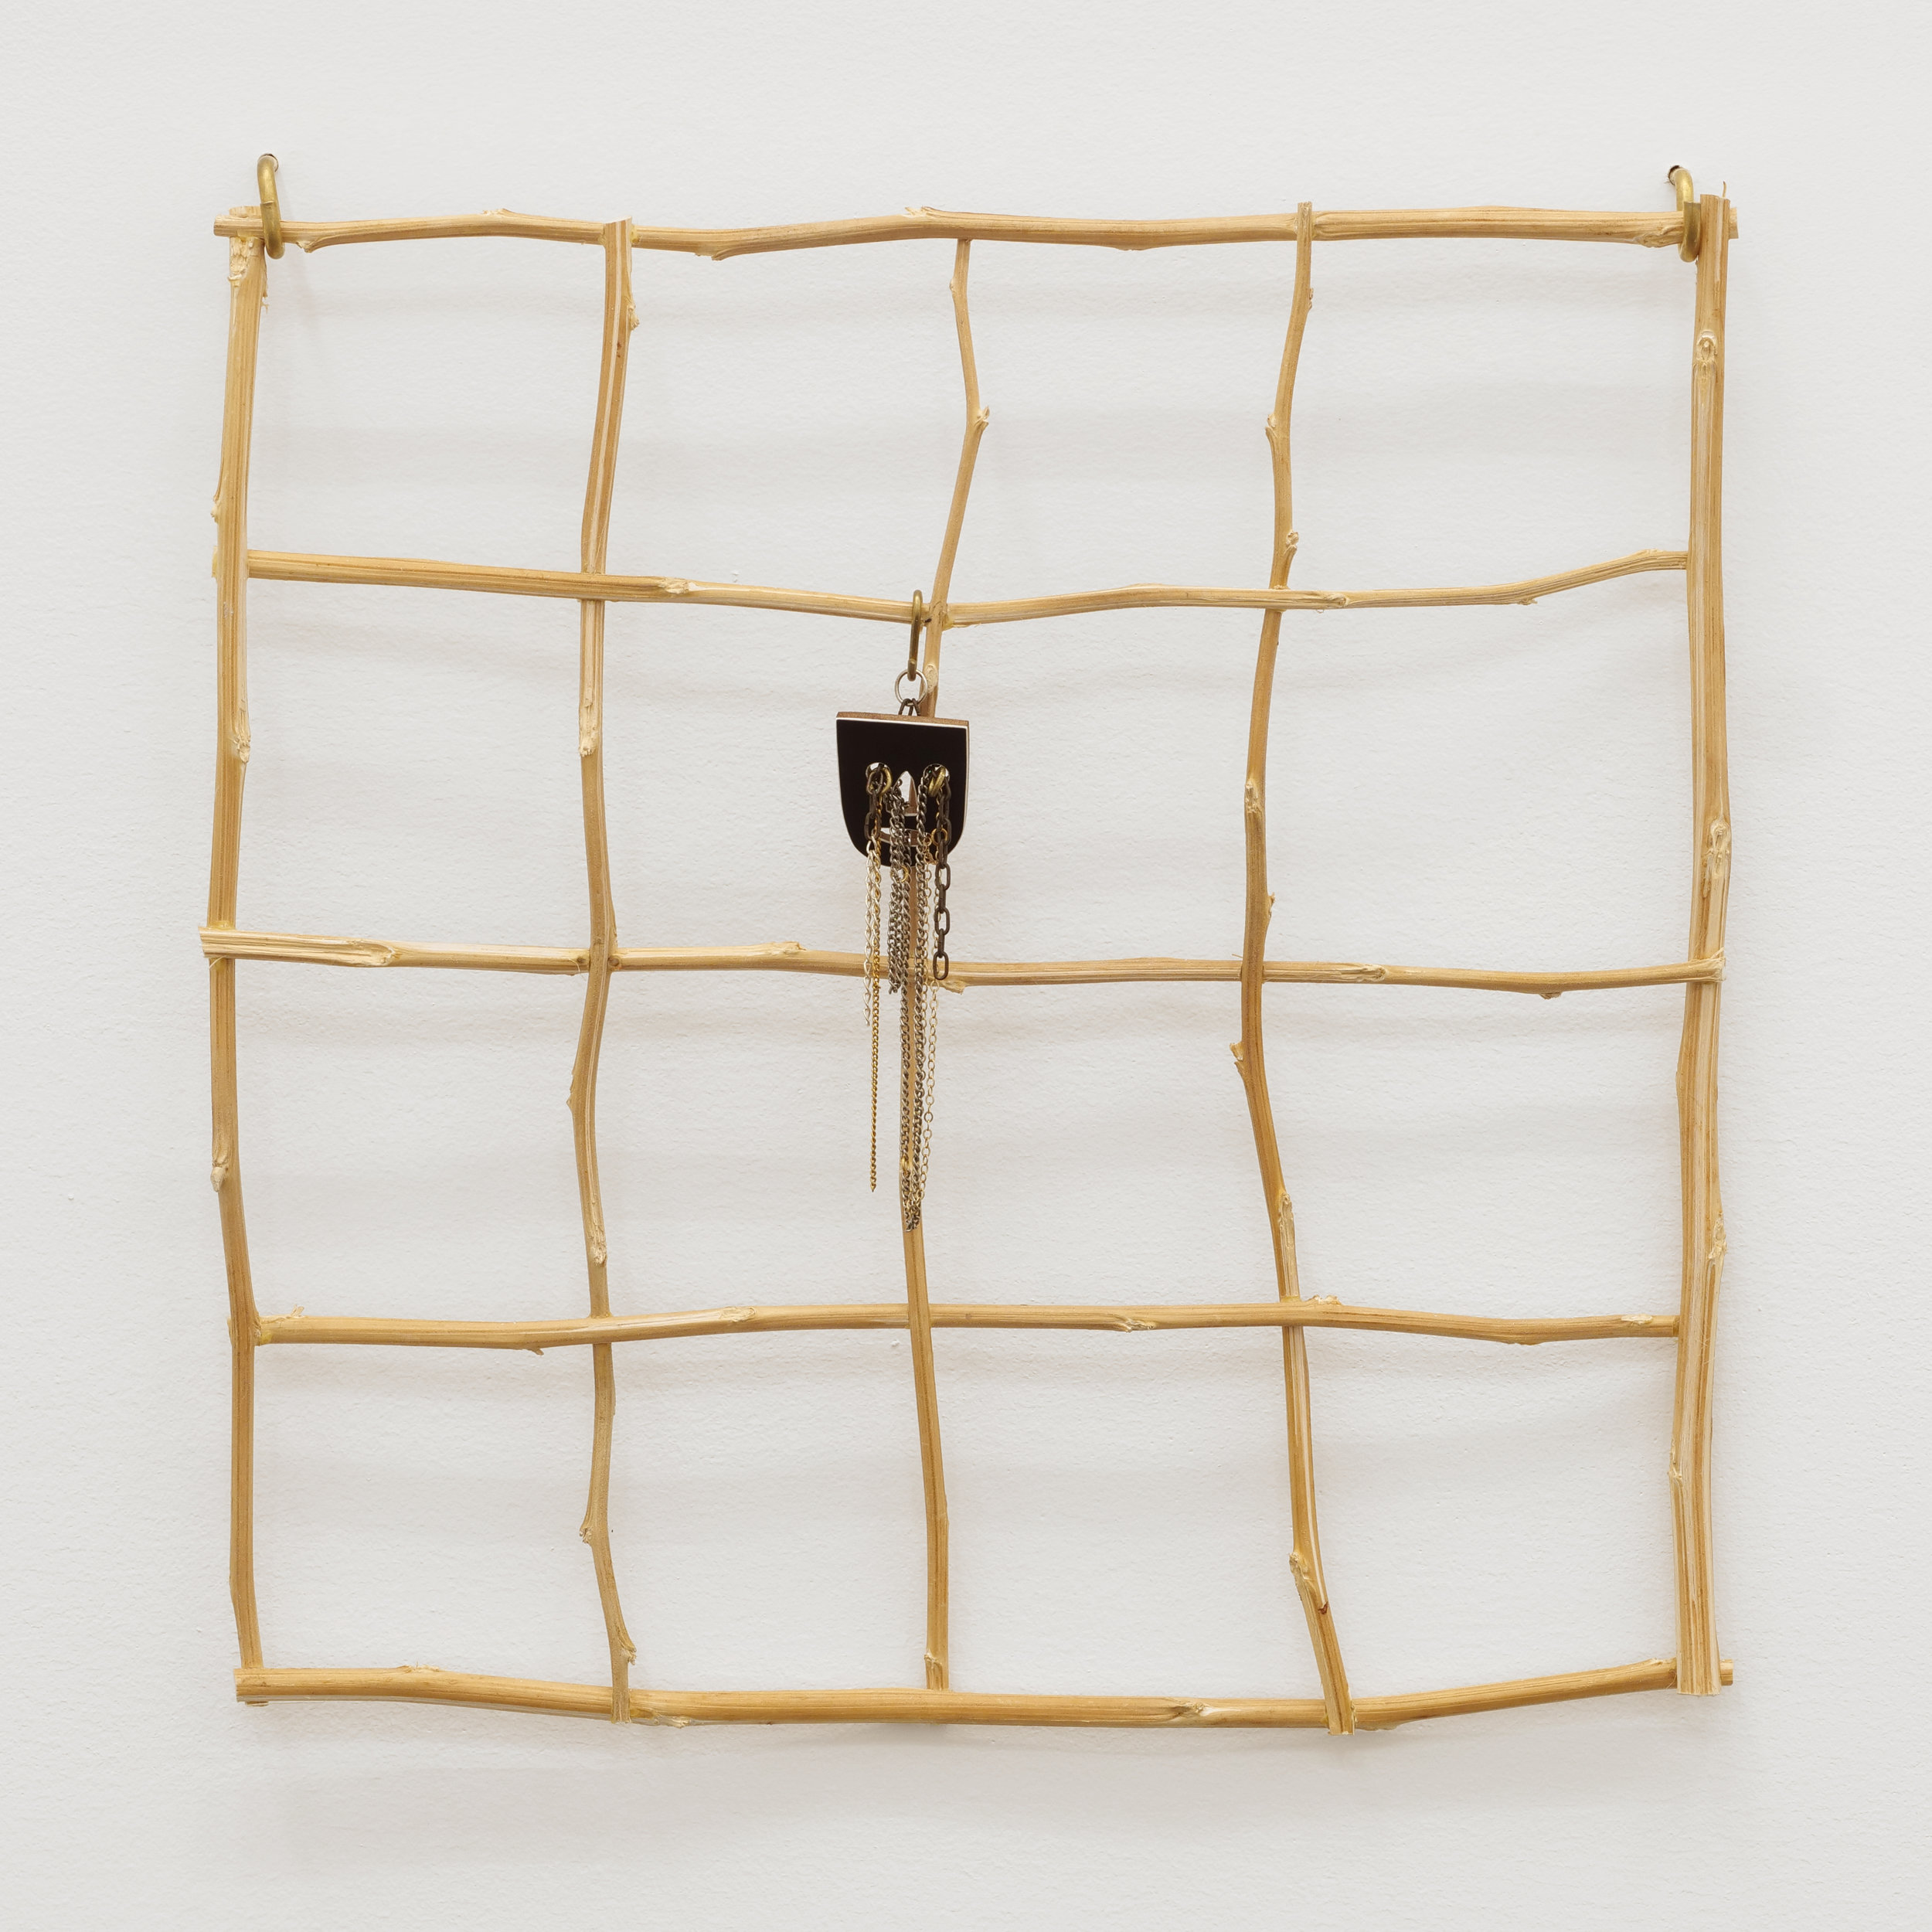 Will Rogan,  Quad , 2018, Hemp, wood, paint, chain, 22 x 18 x 1/2 in